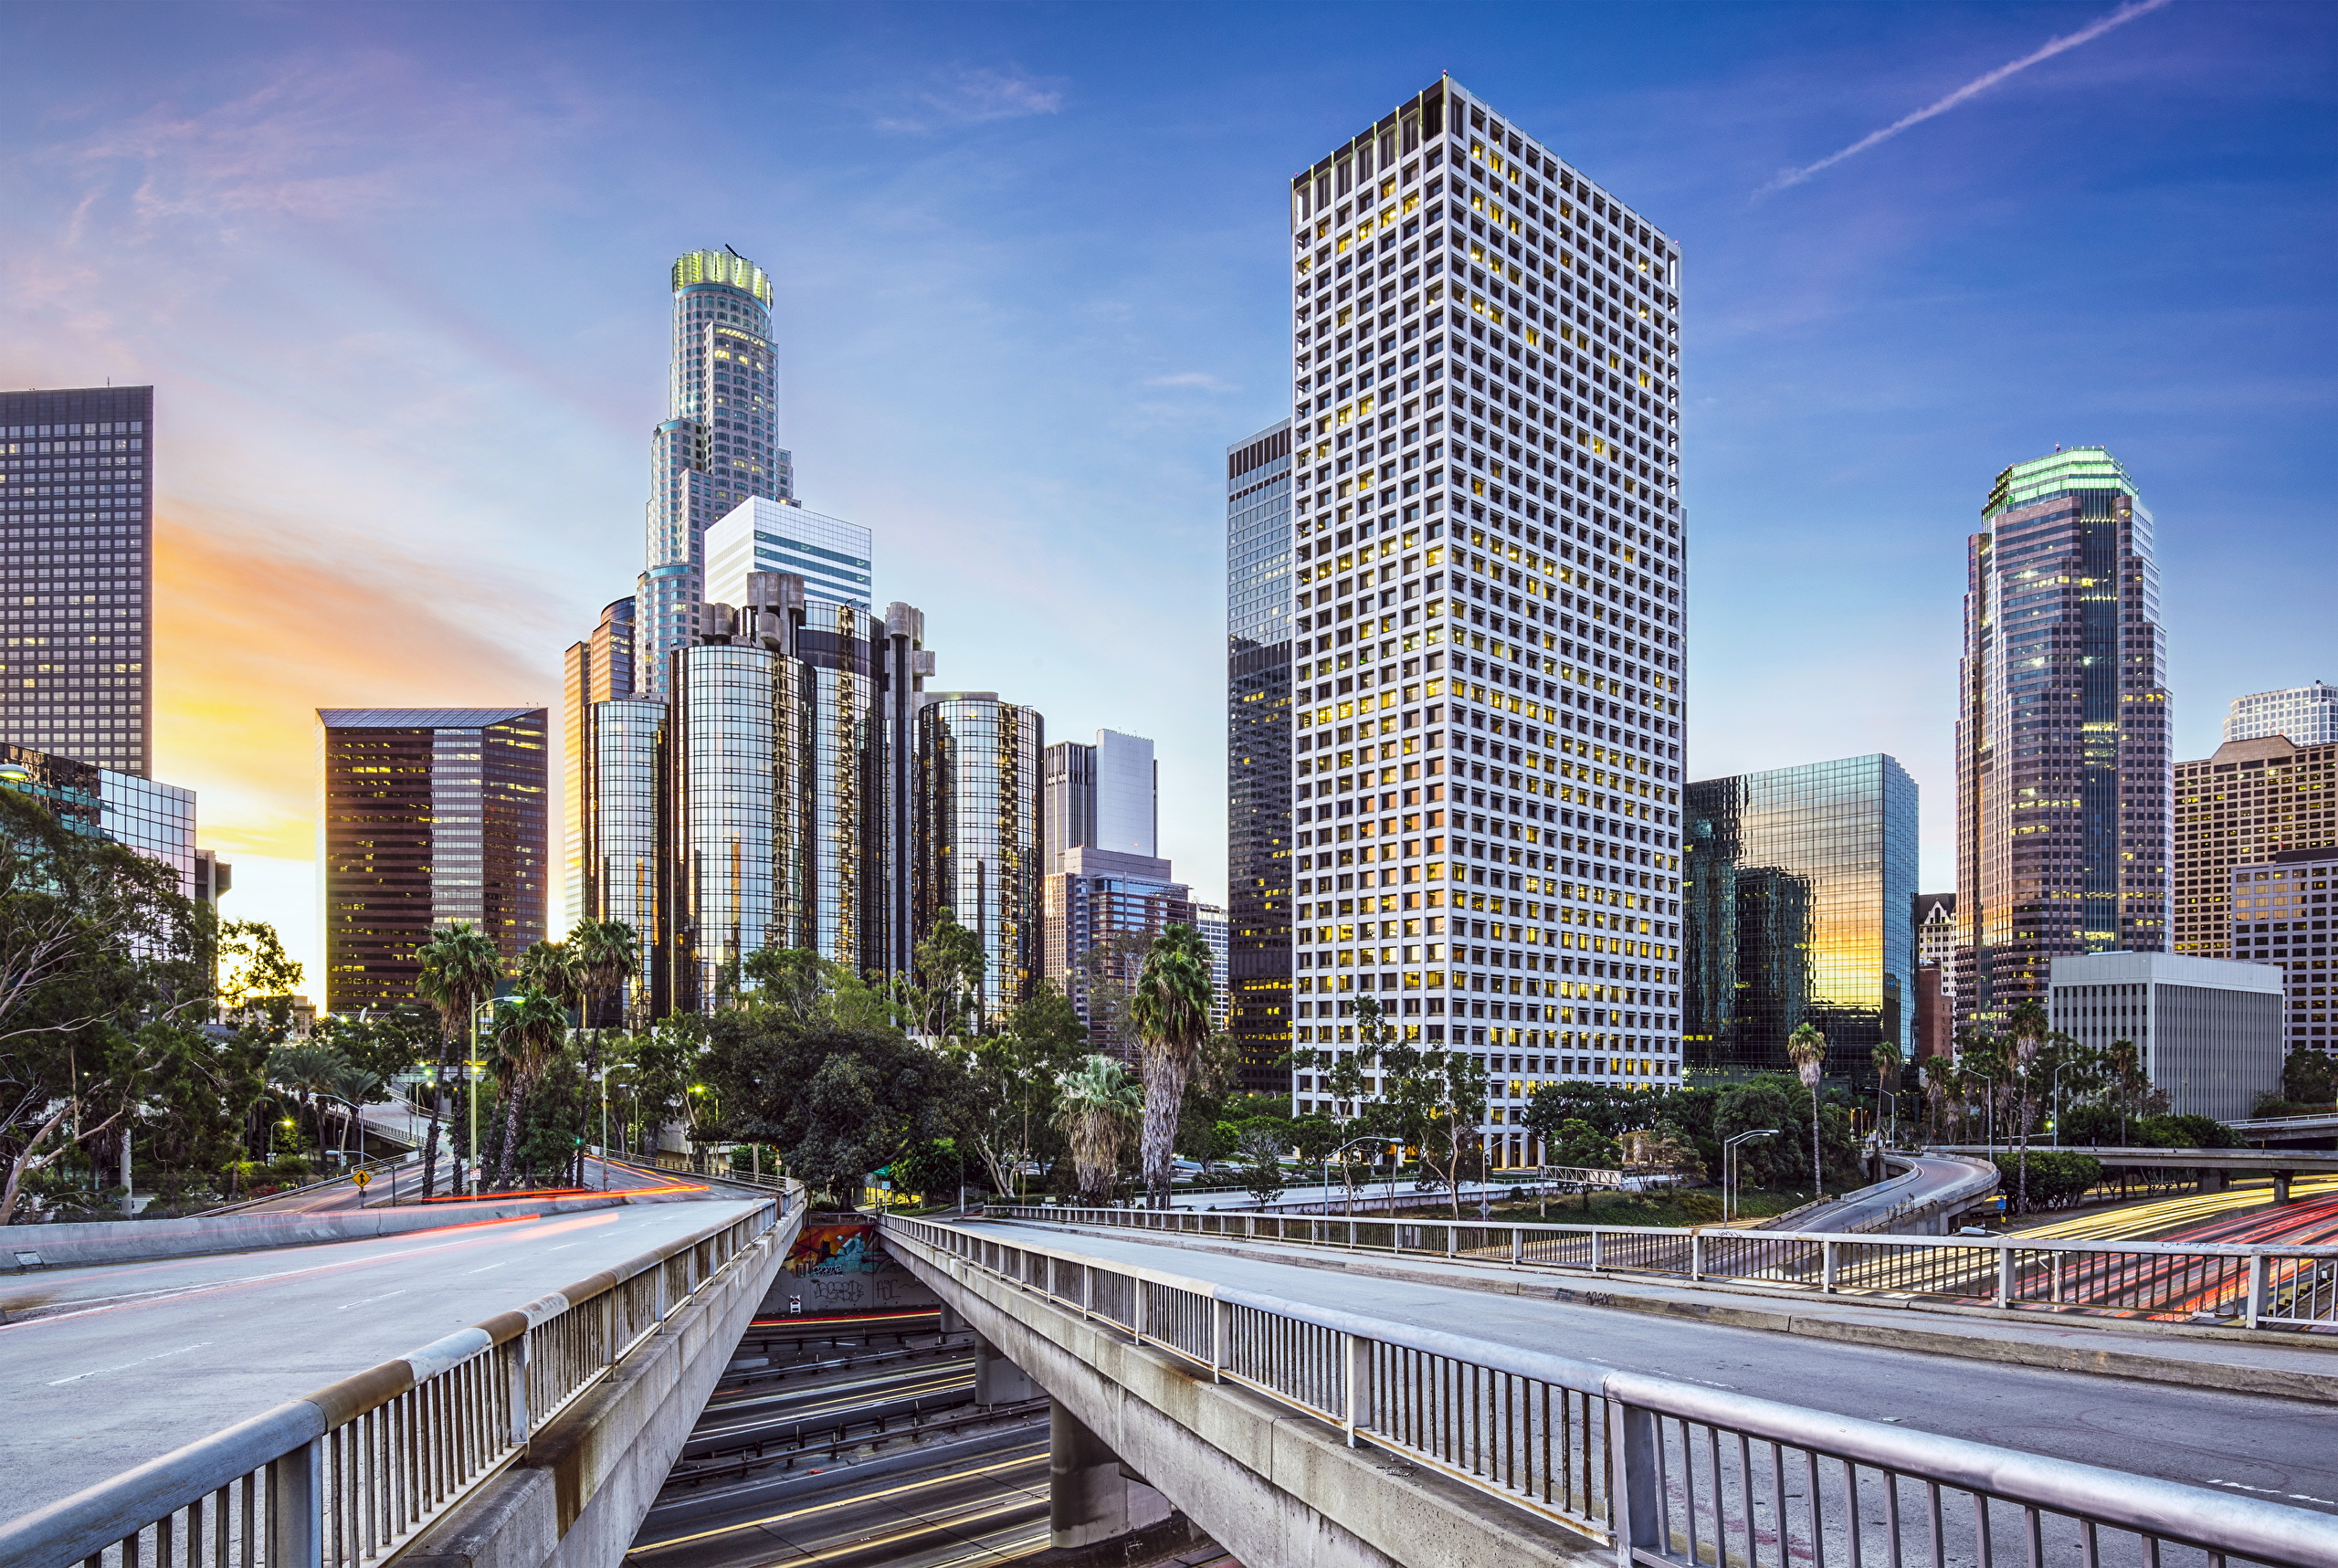 Downtown Los Angeles, California Wallpaper 2560x1717 px